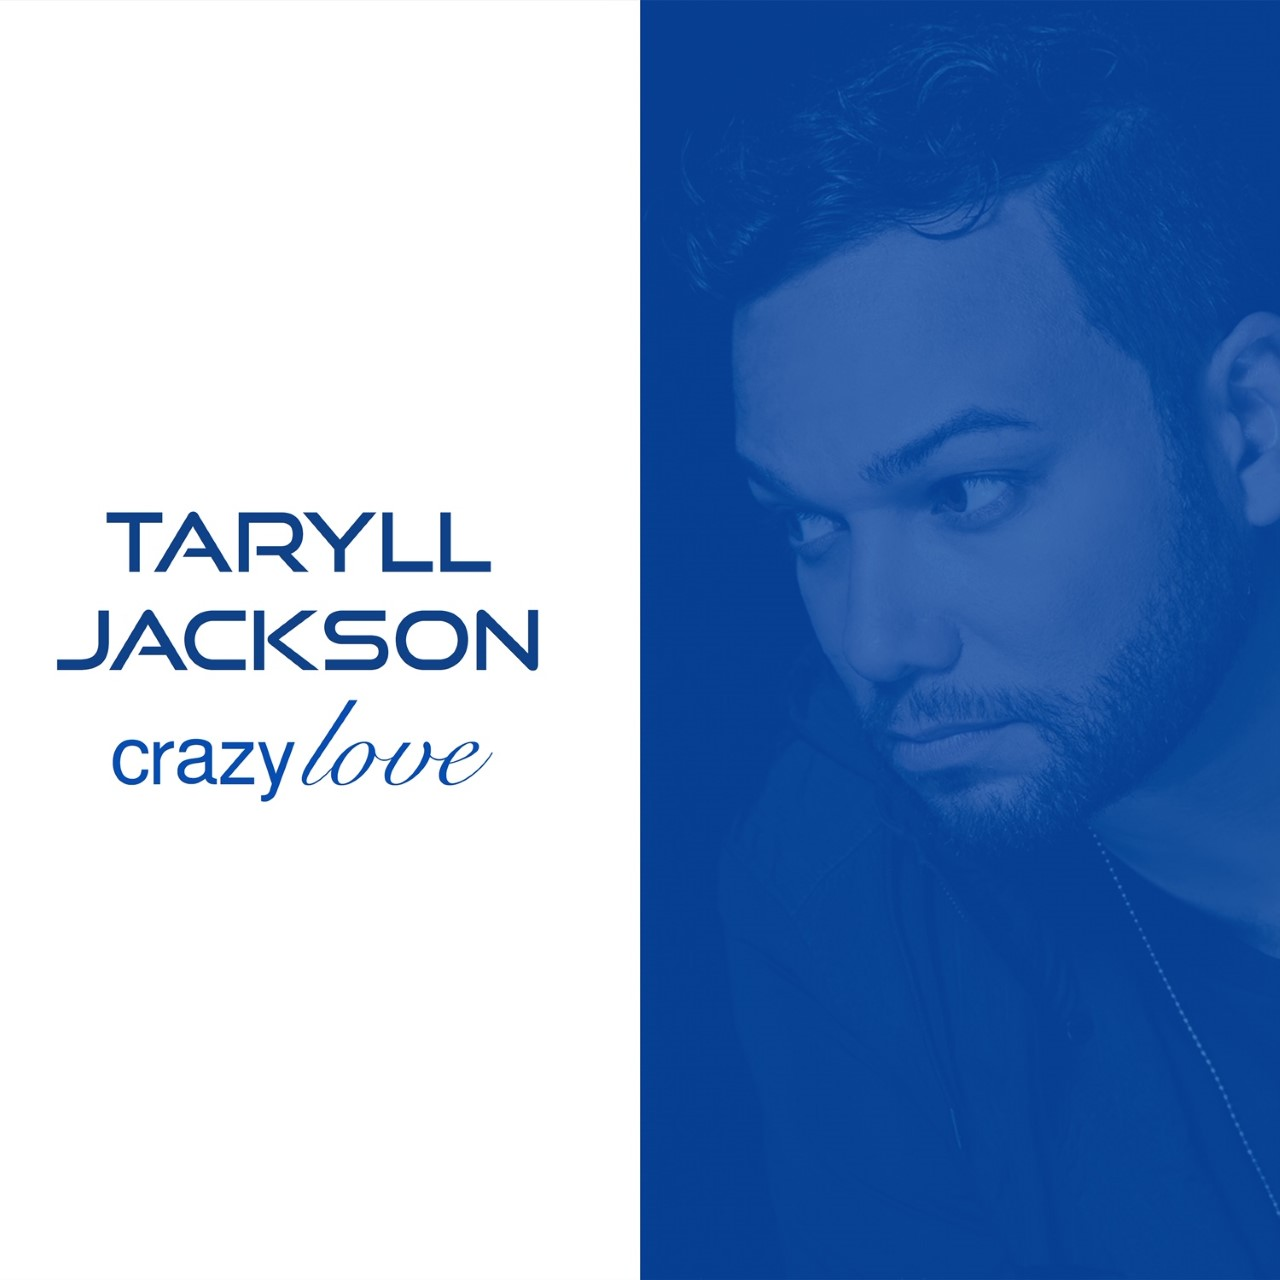 Taryll Jackson Crazy Love Album